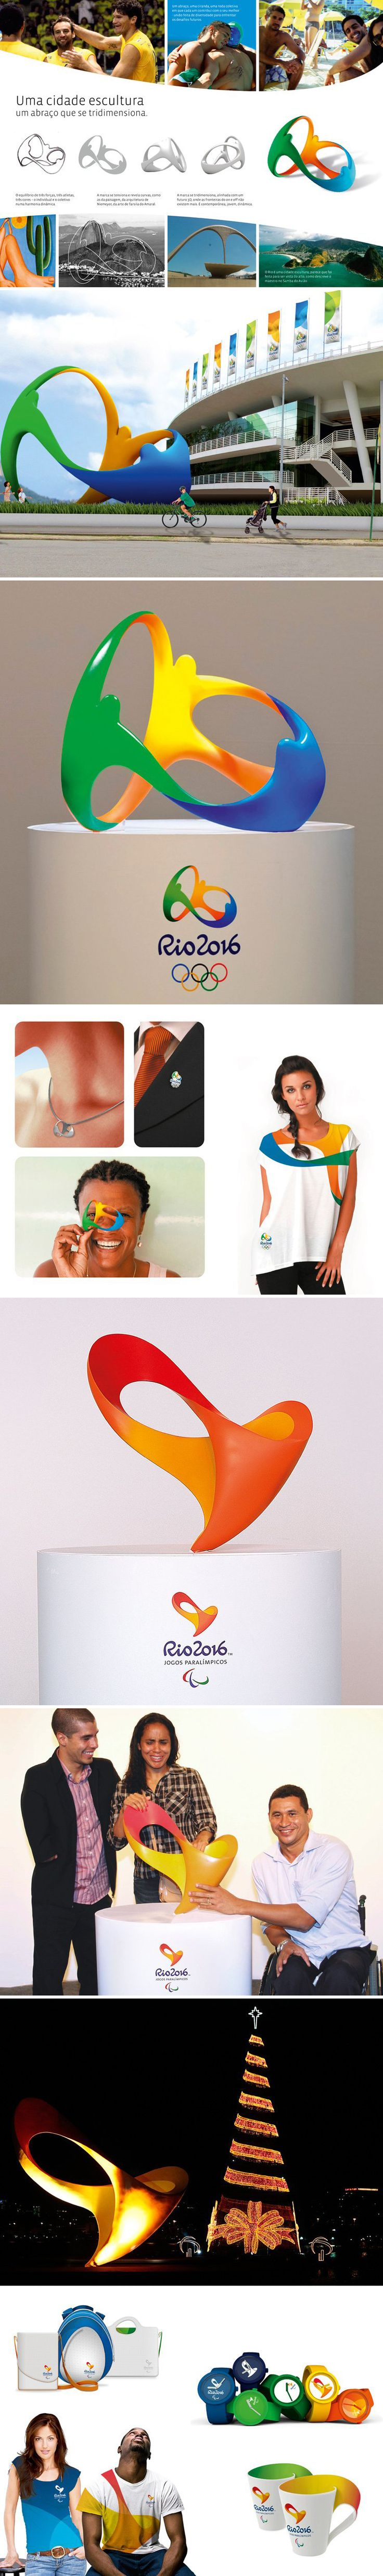 Rio 2016 branding. I hope to be wearing this as one of the athletes.